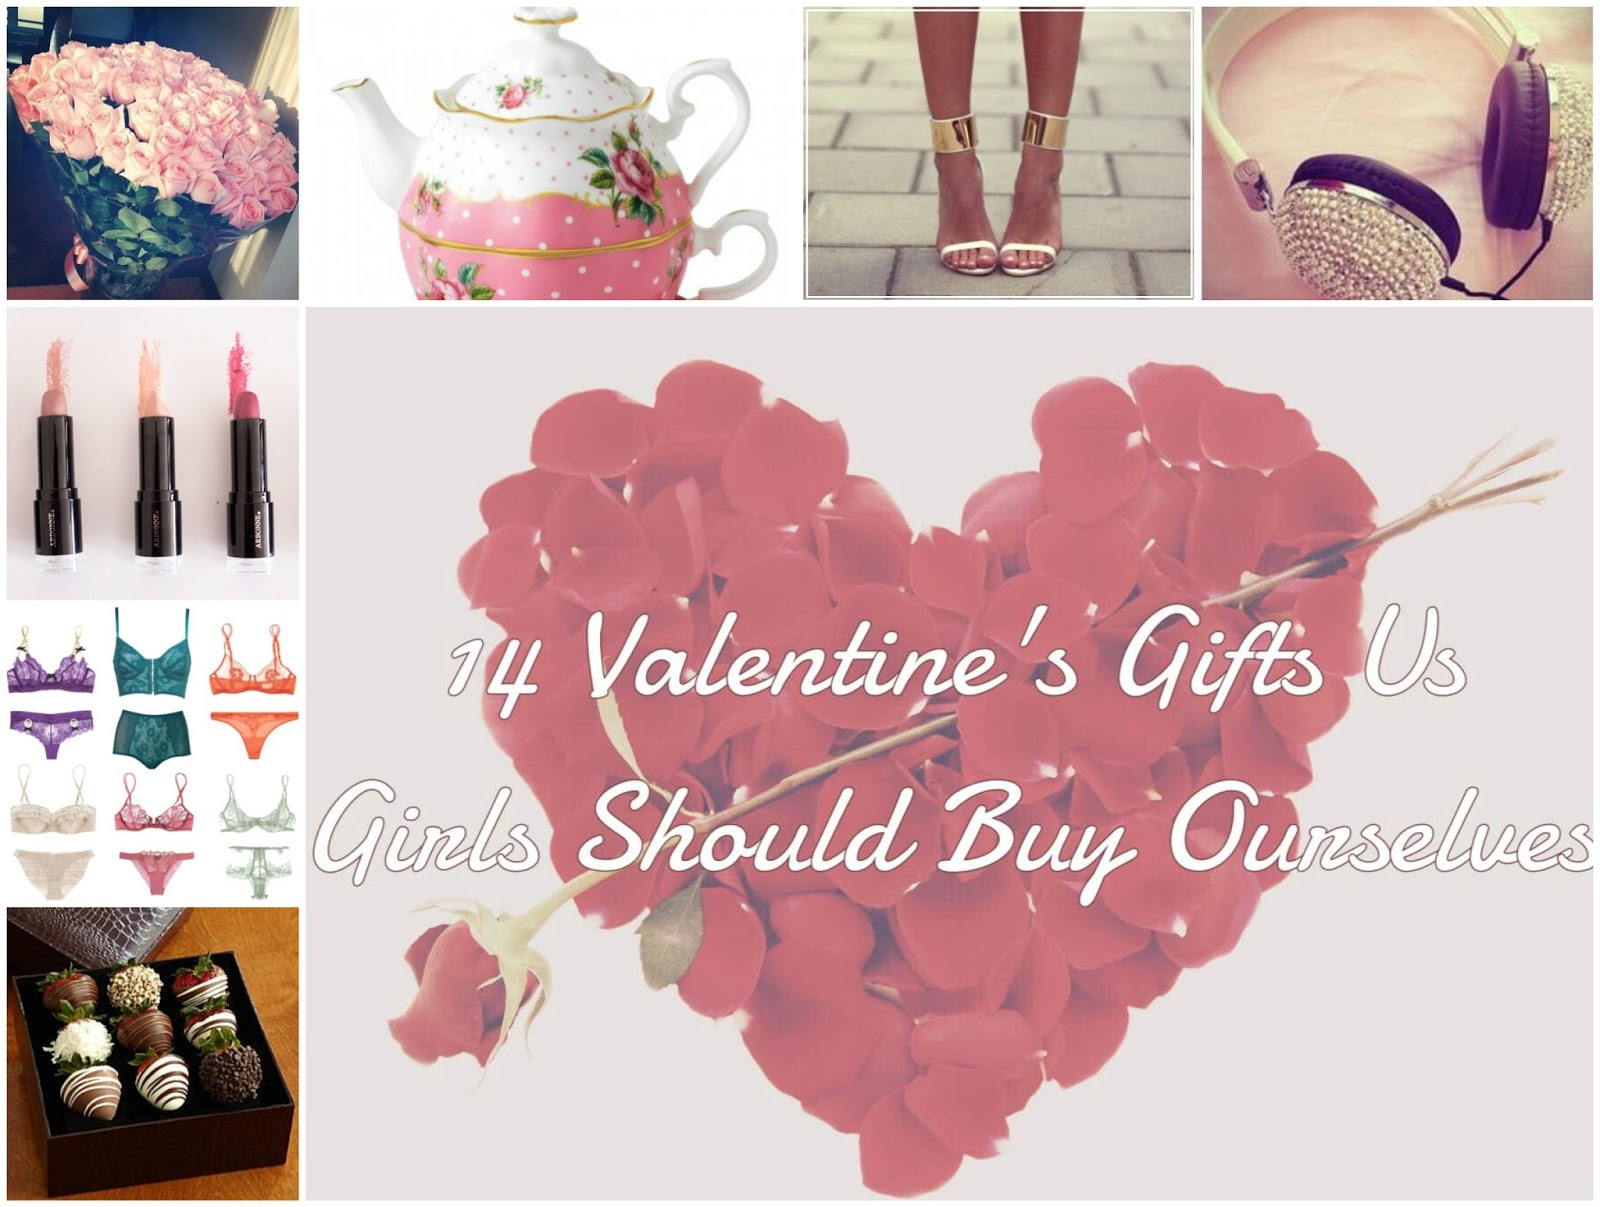 14 valentines gift us girls should buy ourselves